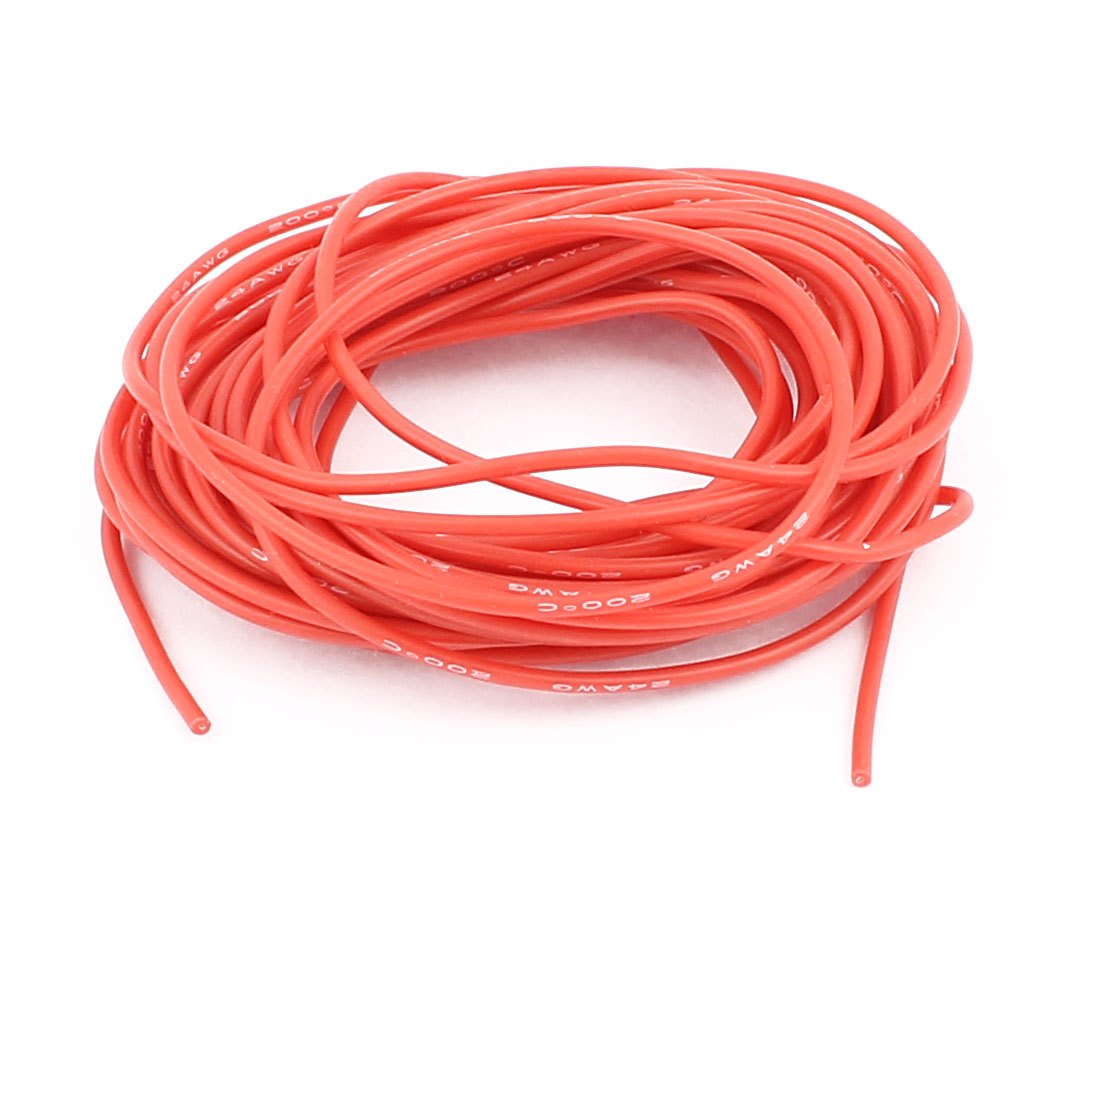 5M 24AWG Electric Copper Core Flexible Silicone Wire Cable Red